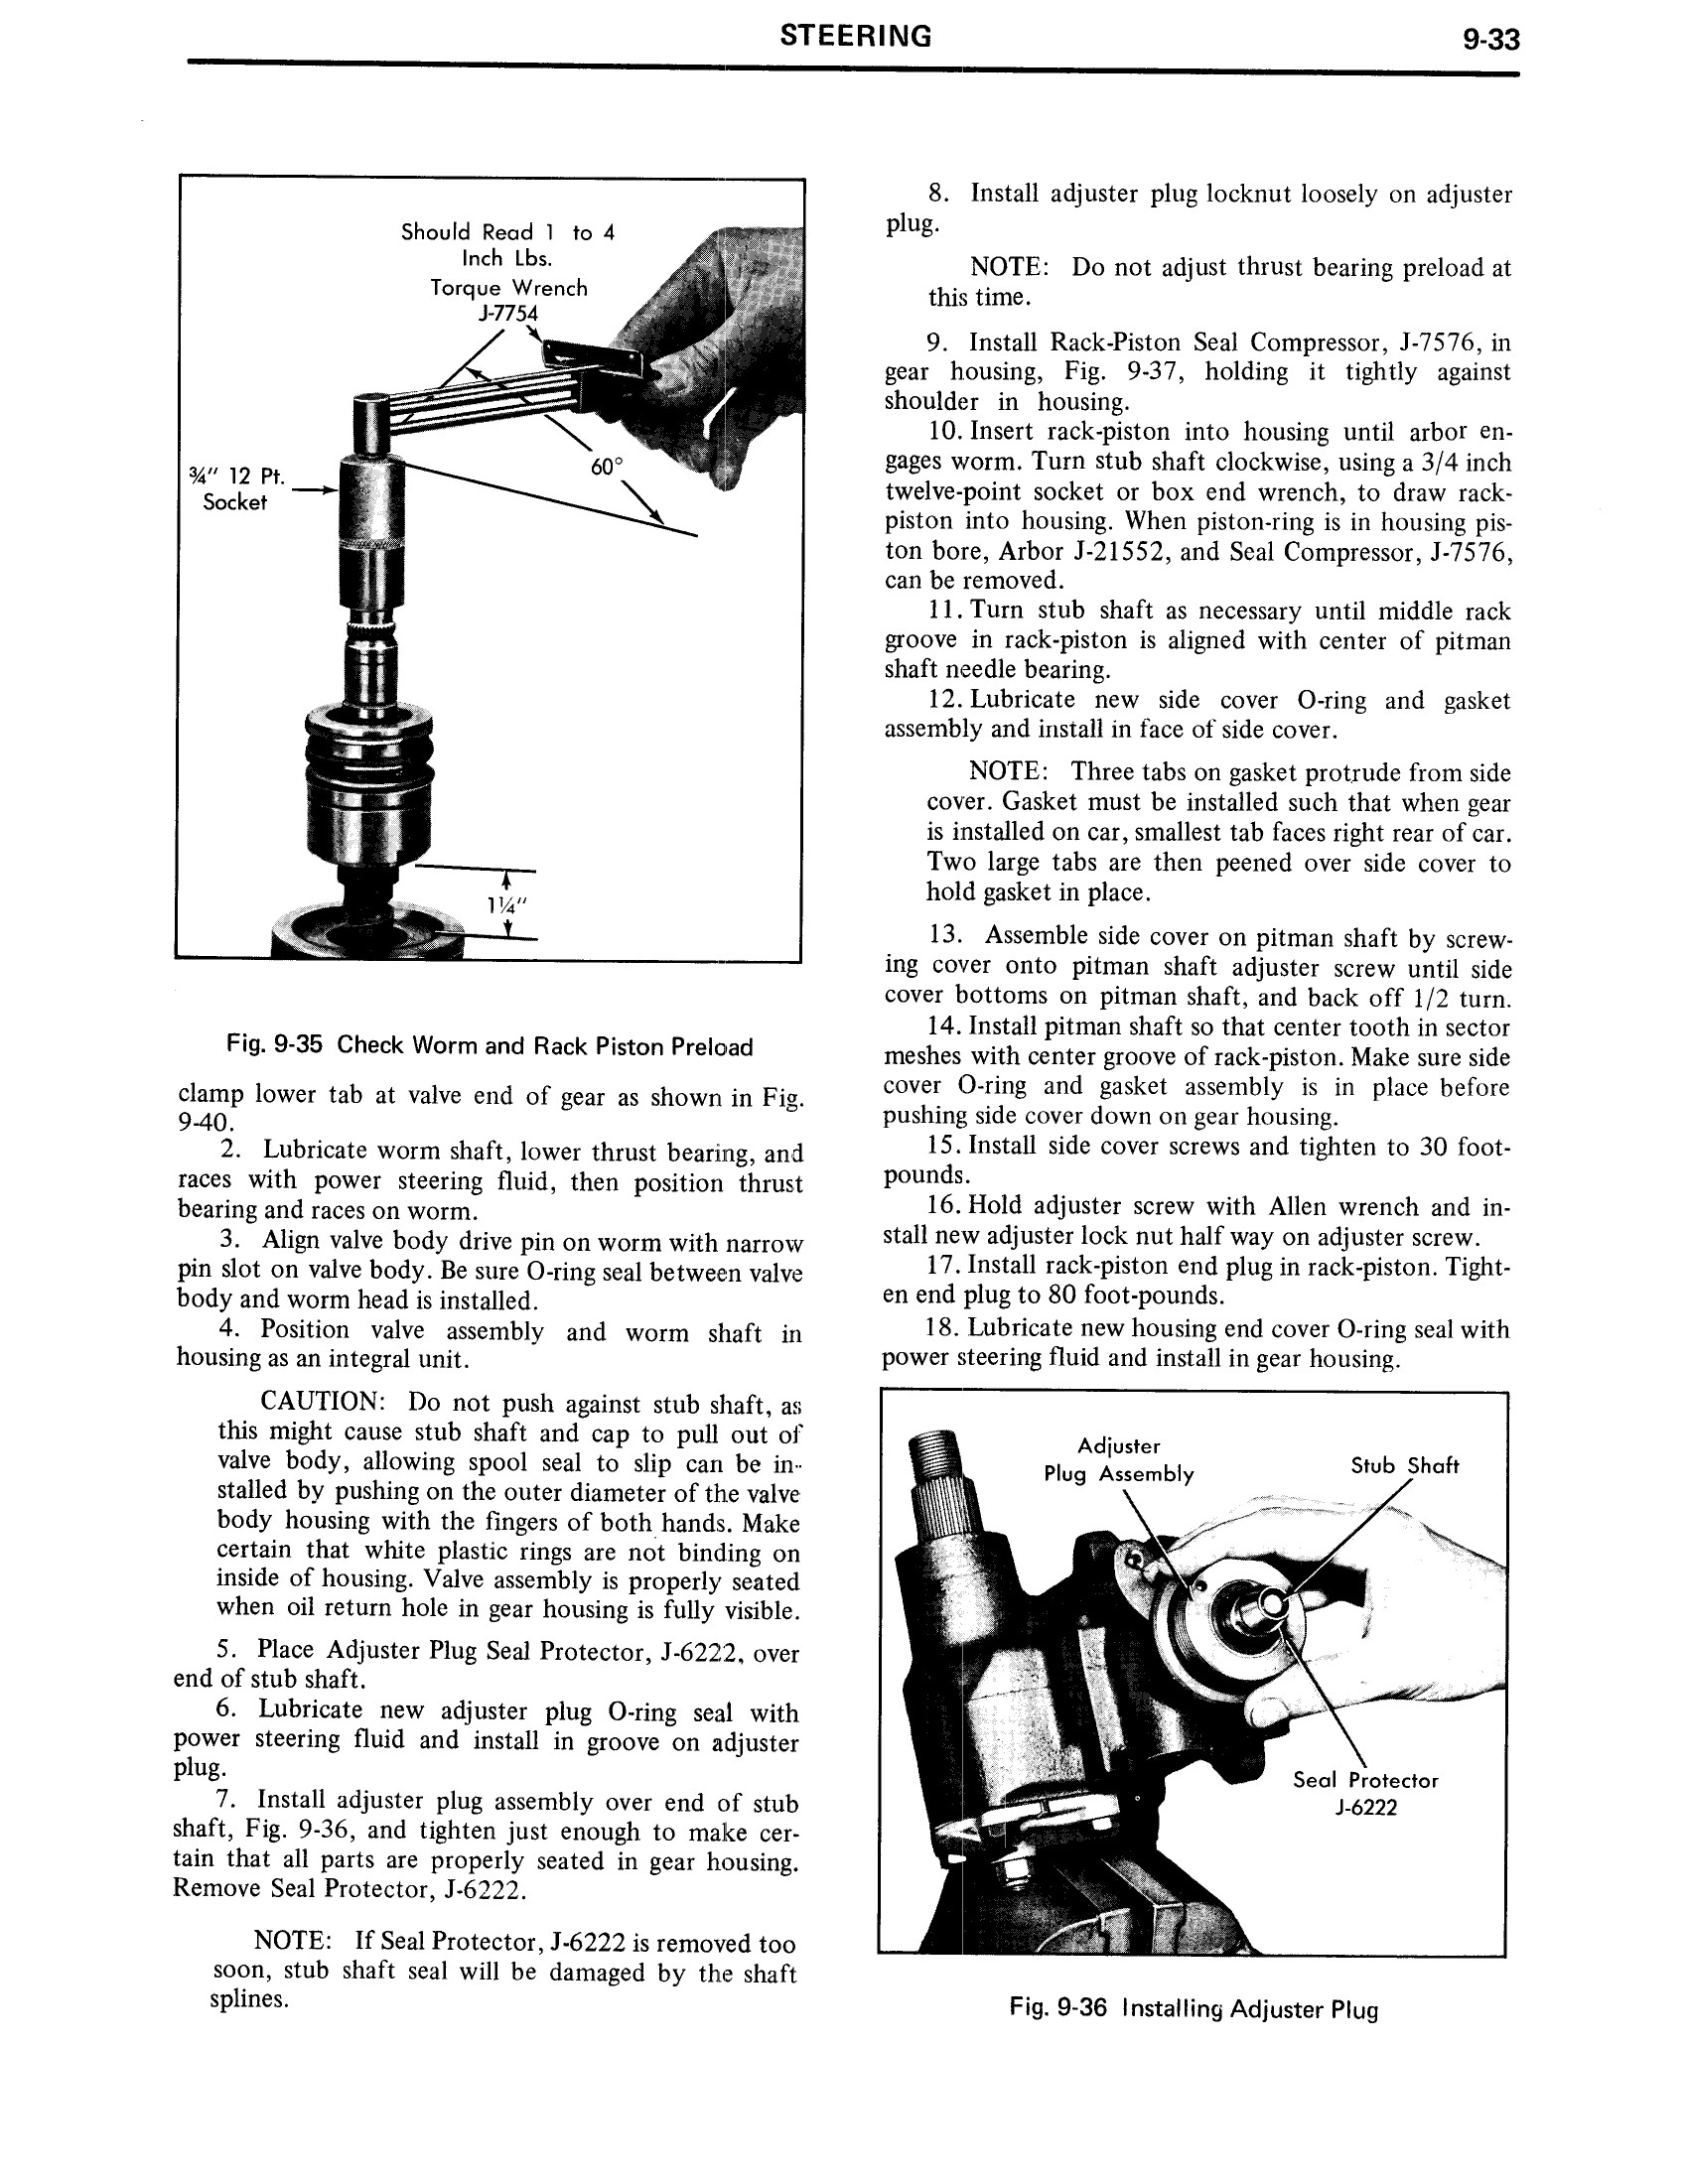 1971 Cadillac Shop Manual- Steering Page 33 of 58